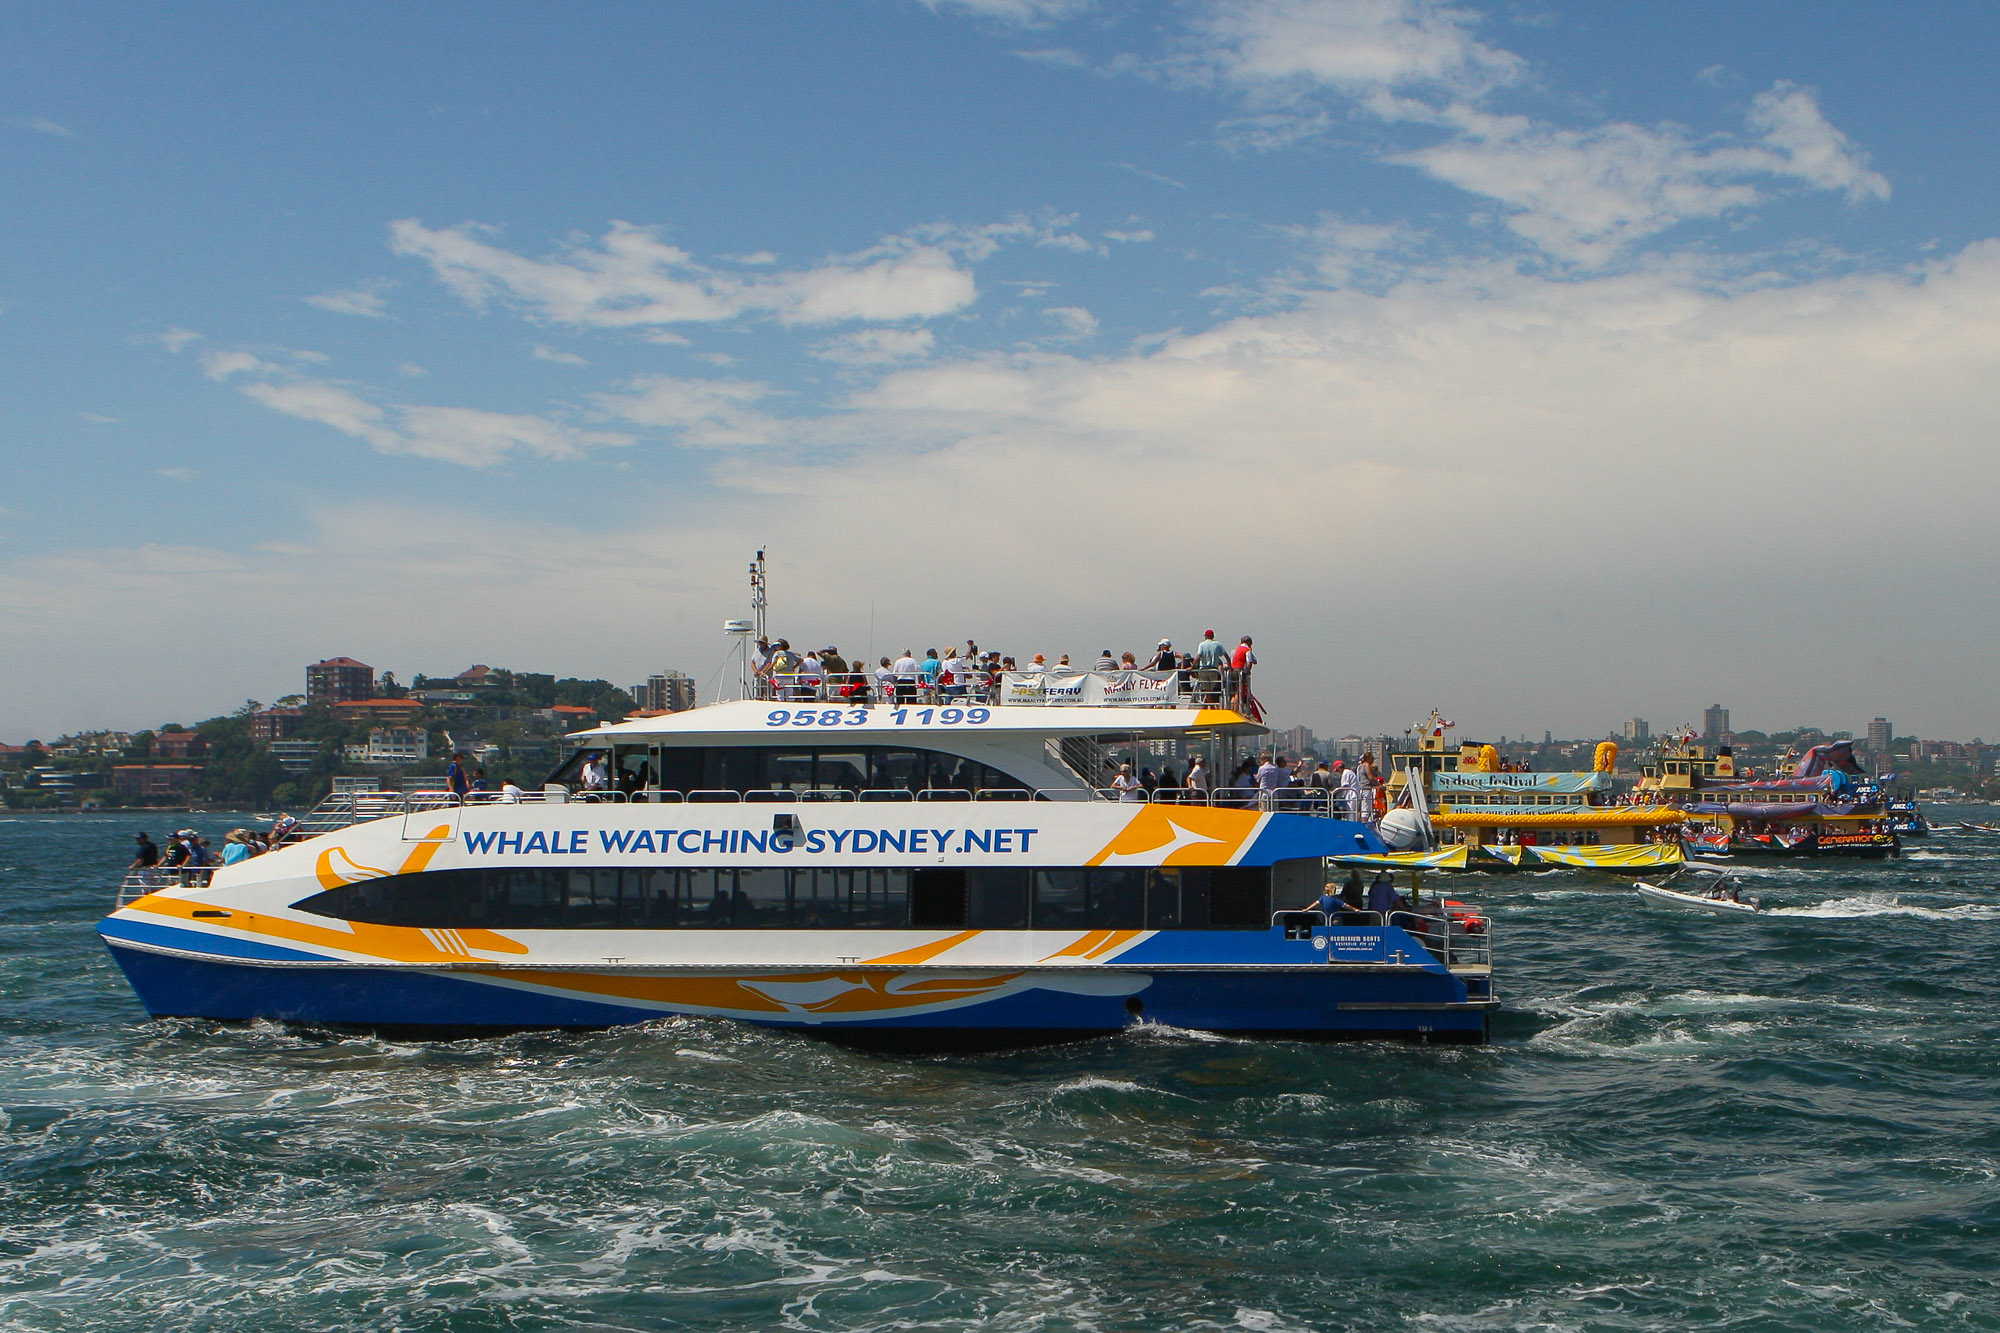 My Fast Ferry, Australia Day, Ferrython Race